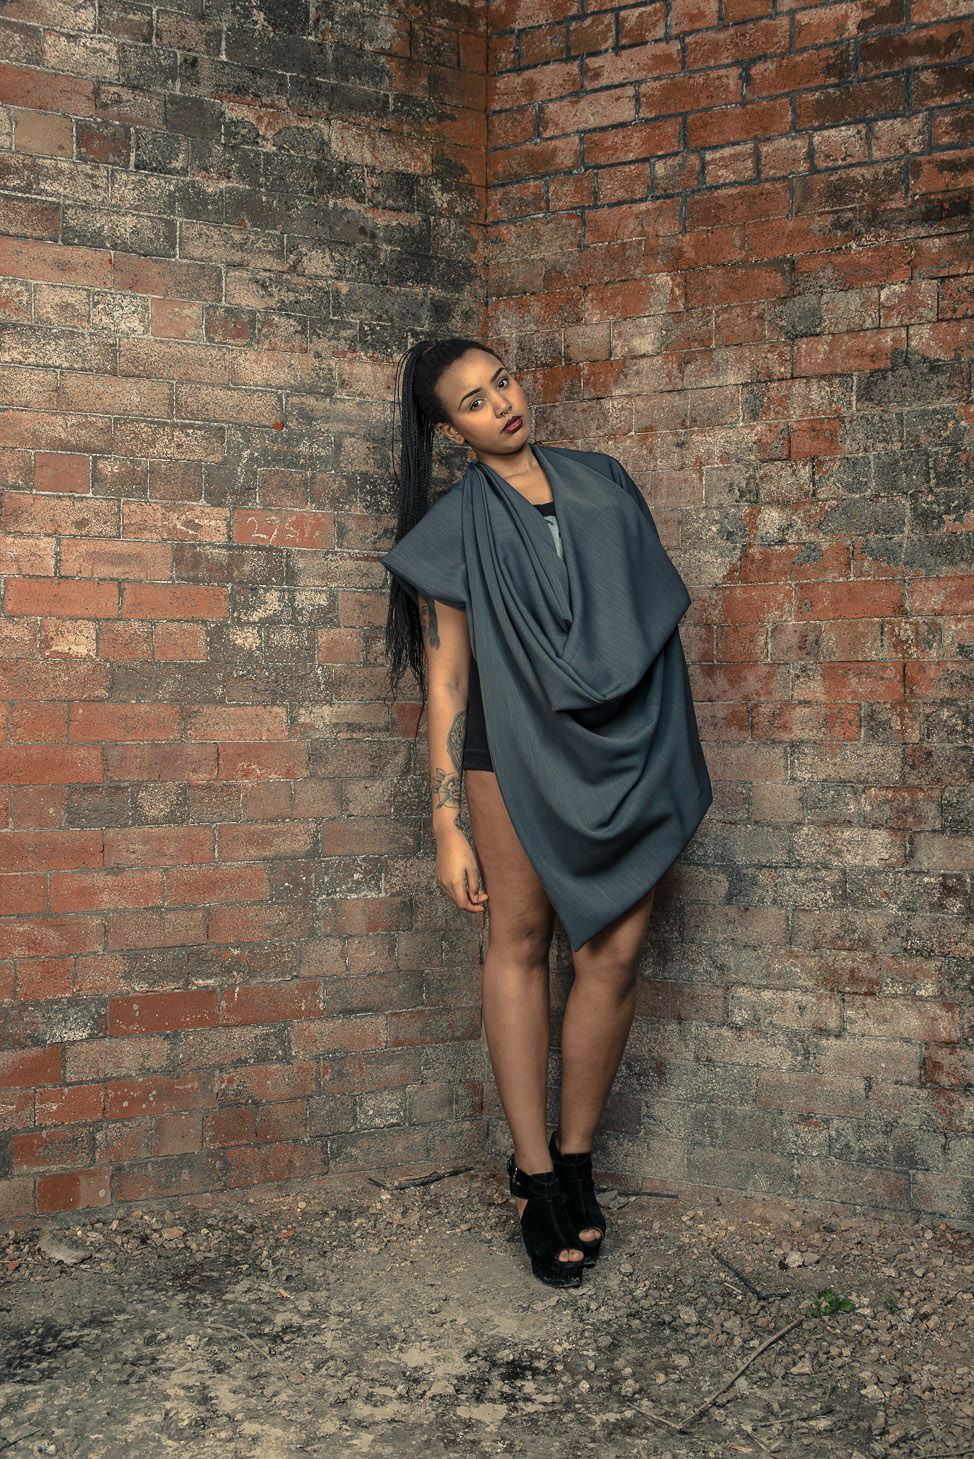 zaramia-ava-zaramiaava-leeds-fashion-designer-ethical-sustainable-tailored-minimalist-cape-versatile-drape-grey-bodysuit-black-belt-wrap-cowl-styling-womenswear-models-photoshoot-location-20